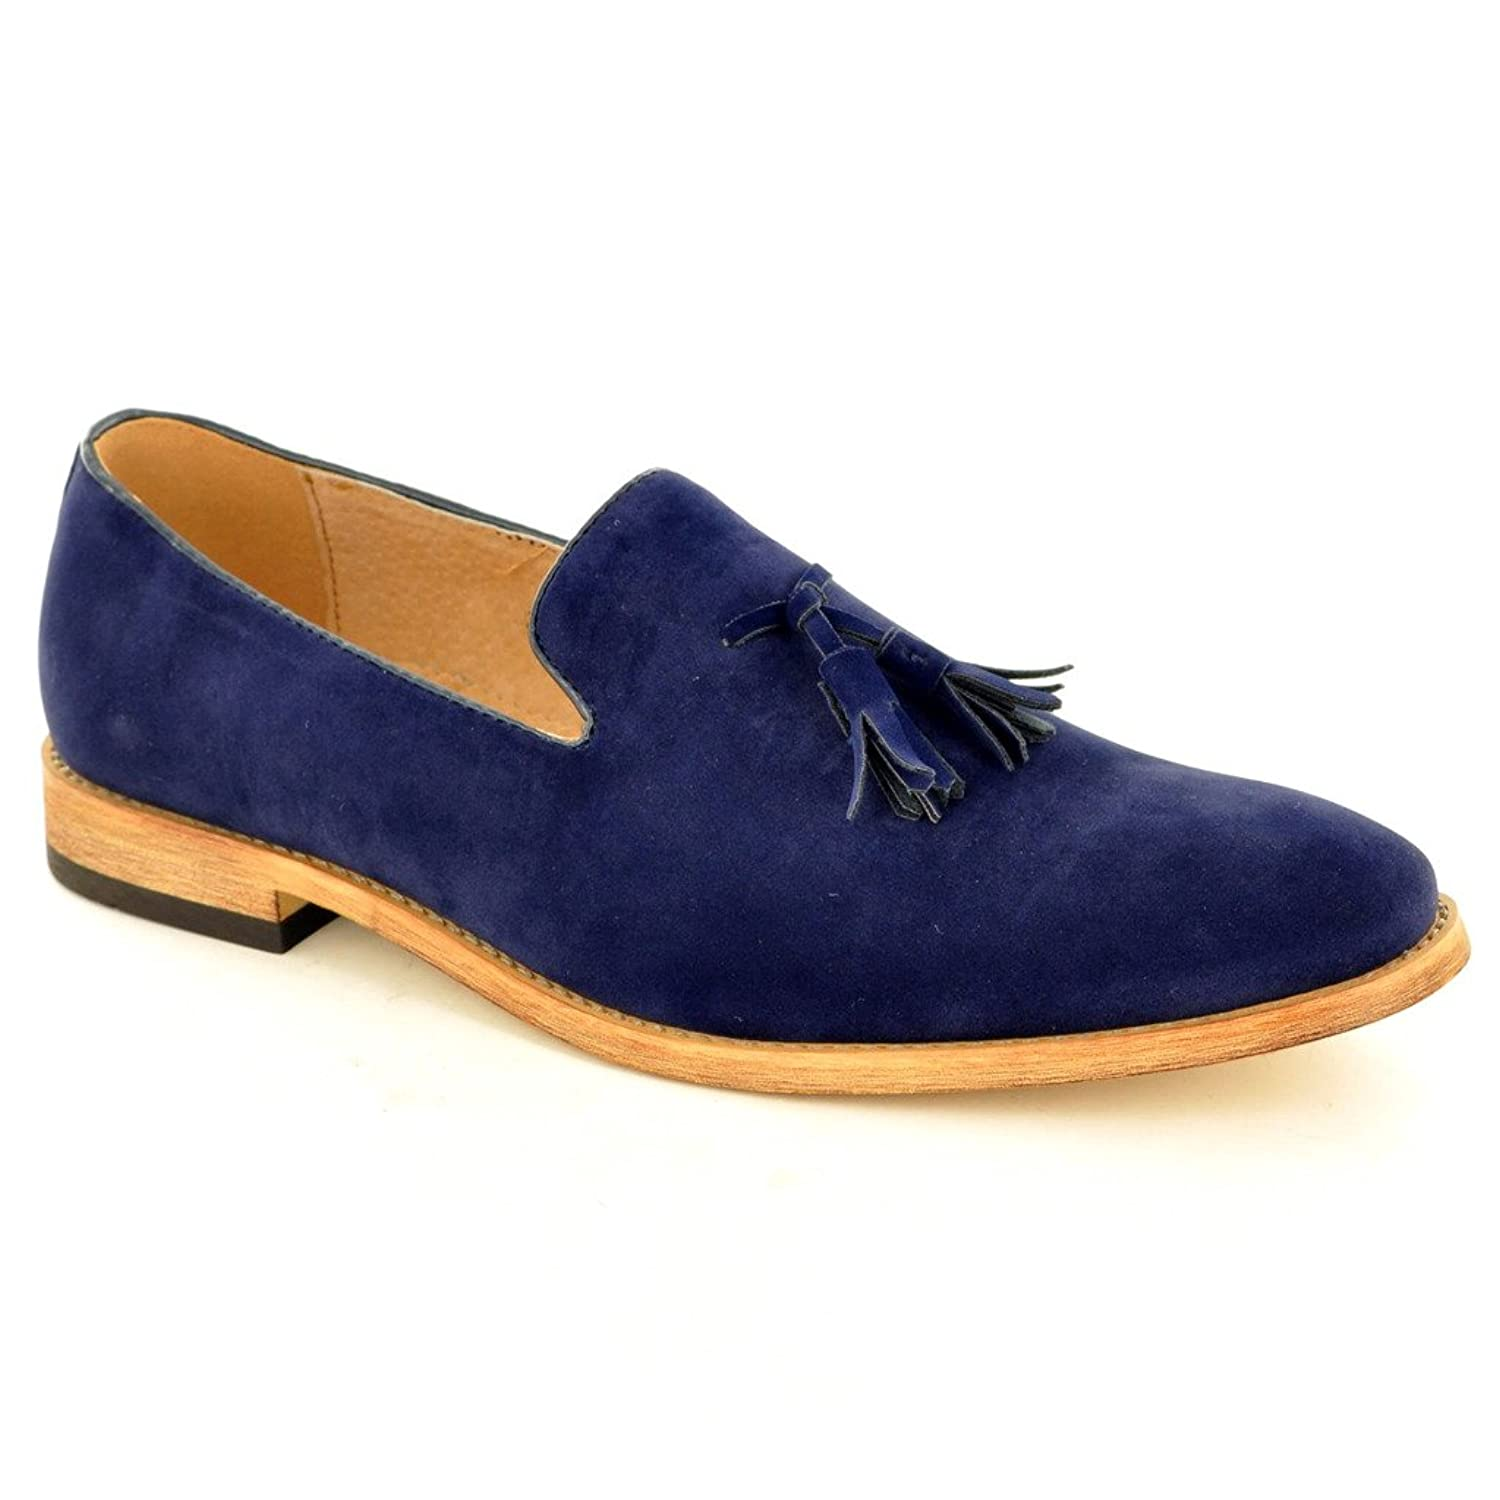 Men's Navy Blue Leather Lined Slip On Suede Tassel Loafers Shoes ( Size 9, Navy  Blue): Amazon.co.uk: Shoes & Bags